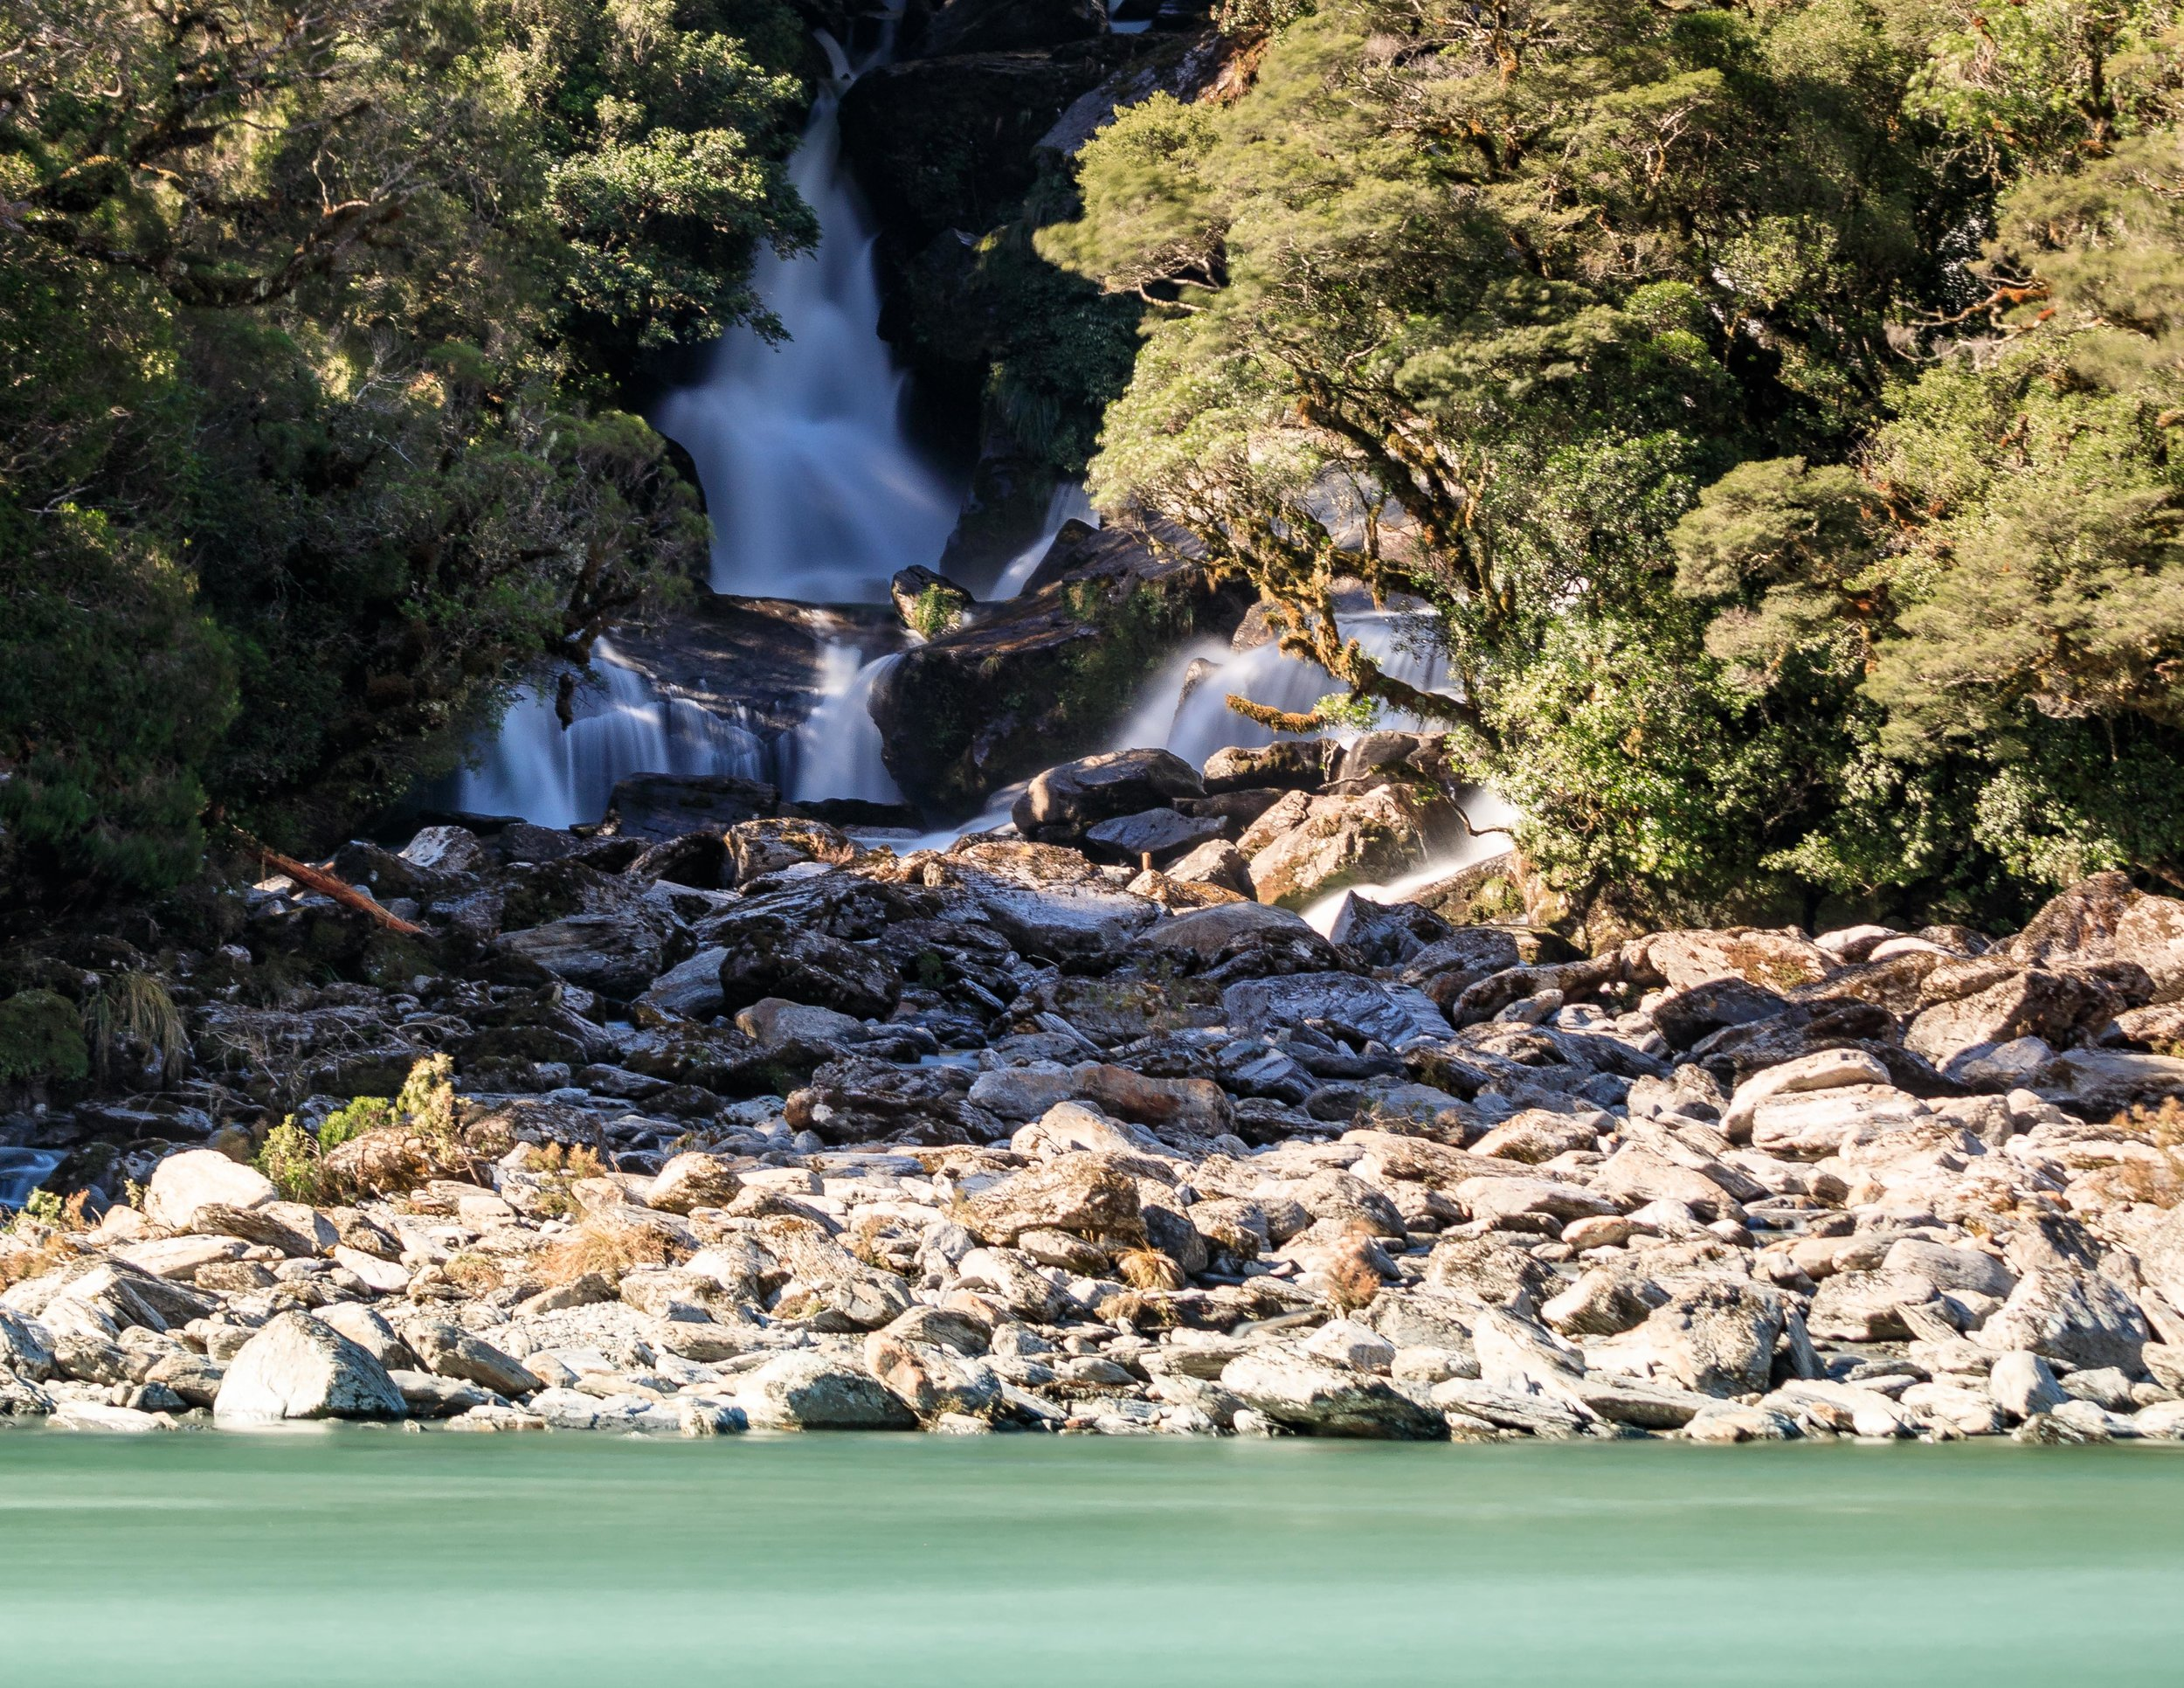 Roaring Billy Falls, one of the random but stunning stops along the road. Check out that milky water!